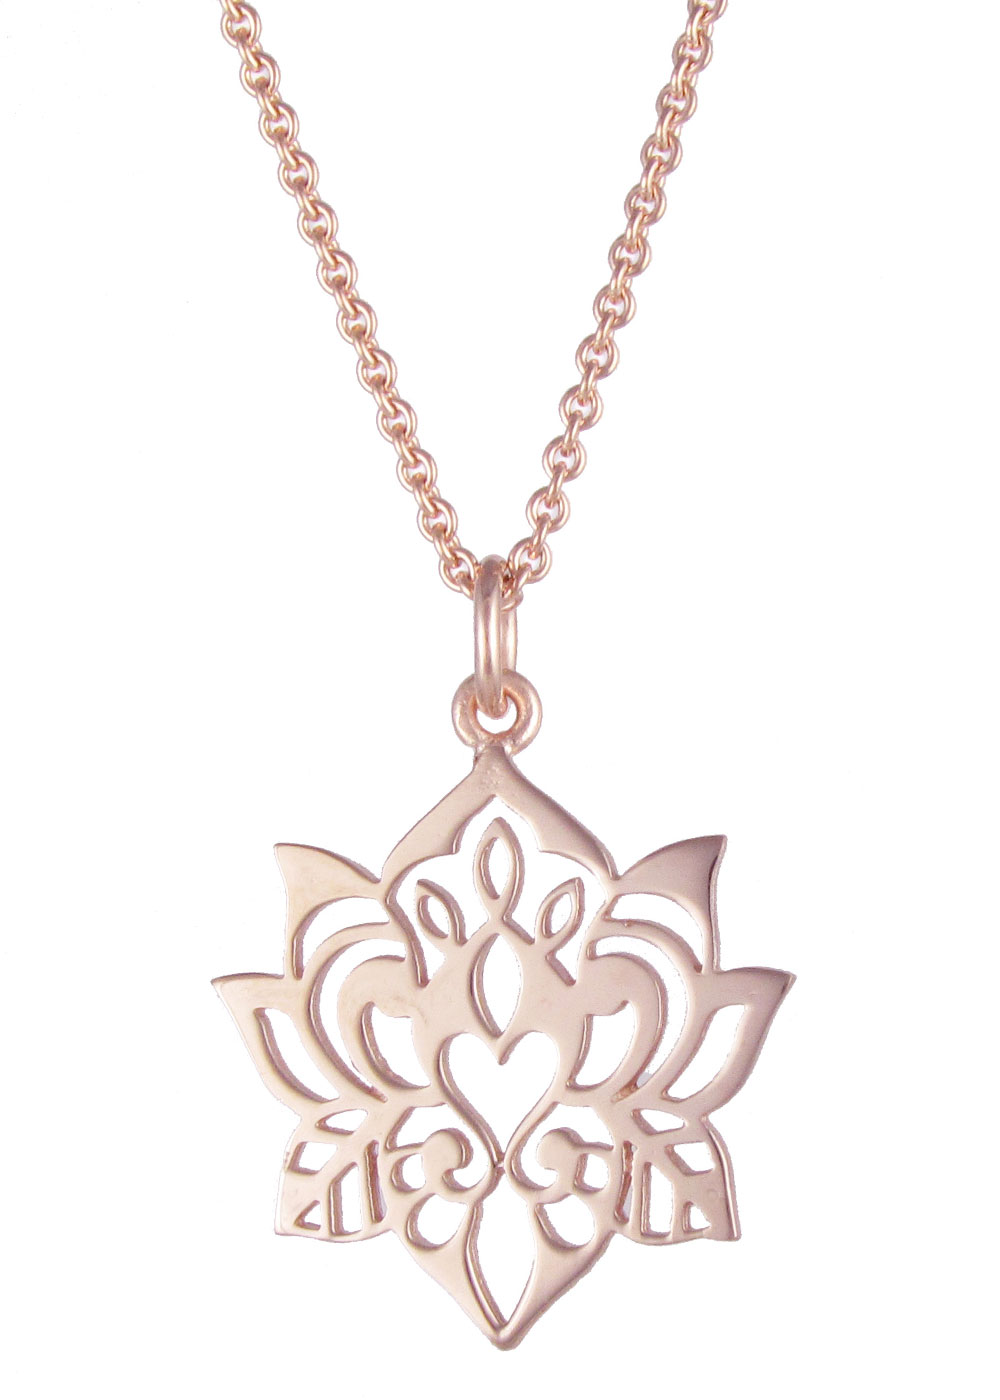 argentium in pendant silver necklace sterling flower lotus